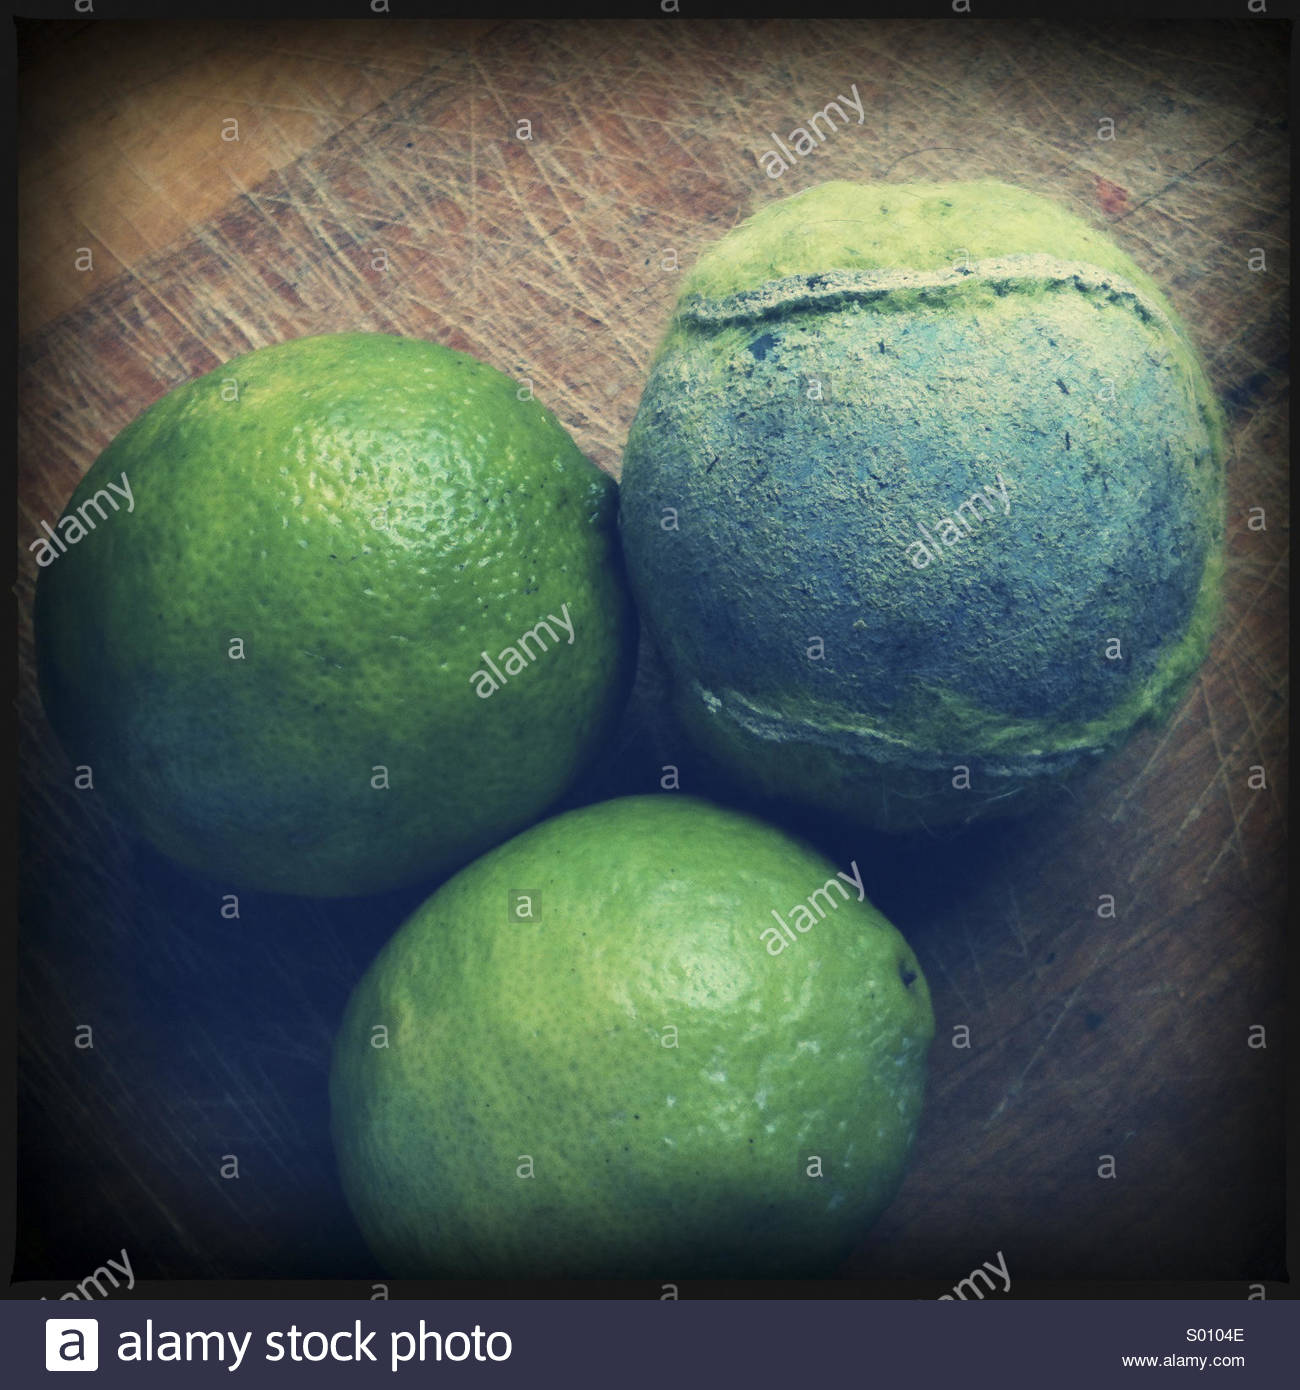 two-limes-and-an-old-tennis-ball-things-